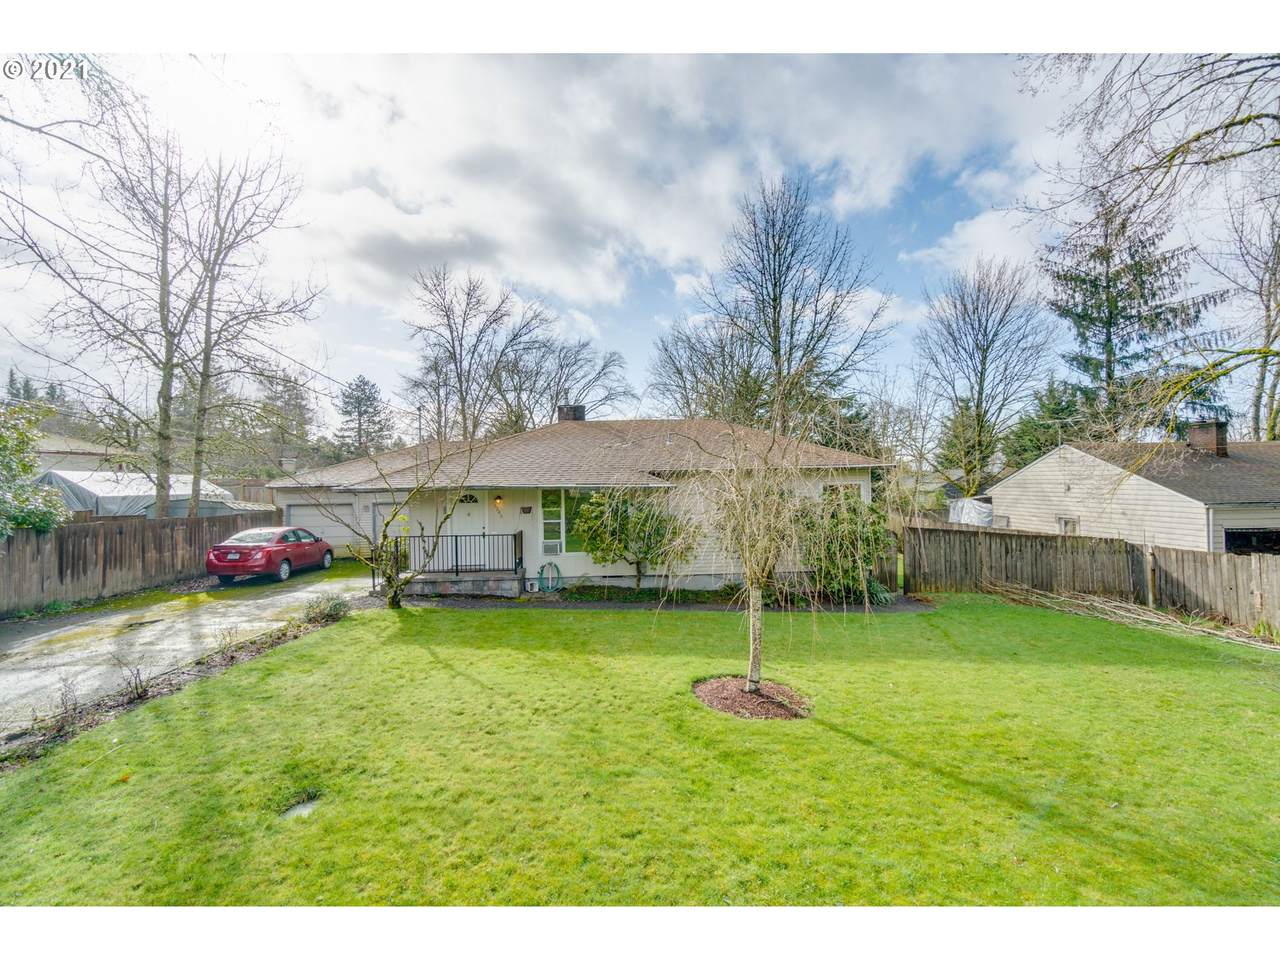 6246 Taylors Ferry Rd - Photo 1